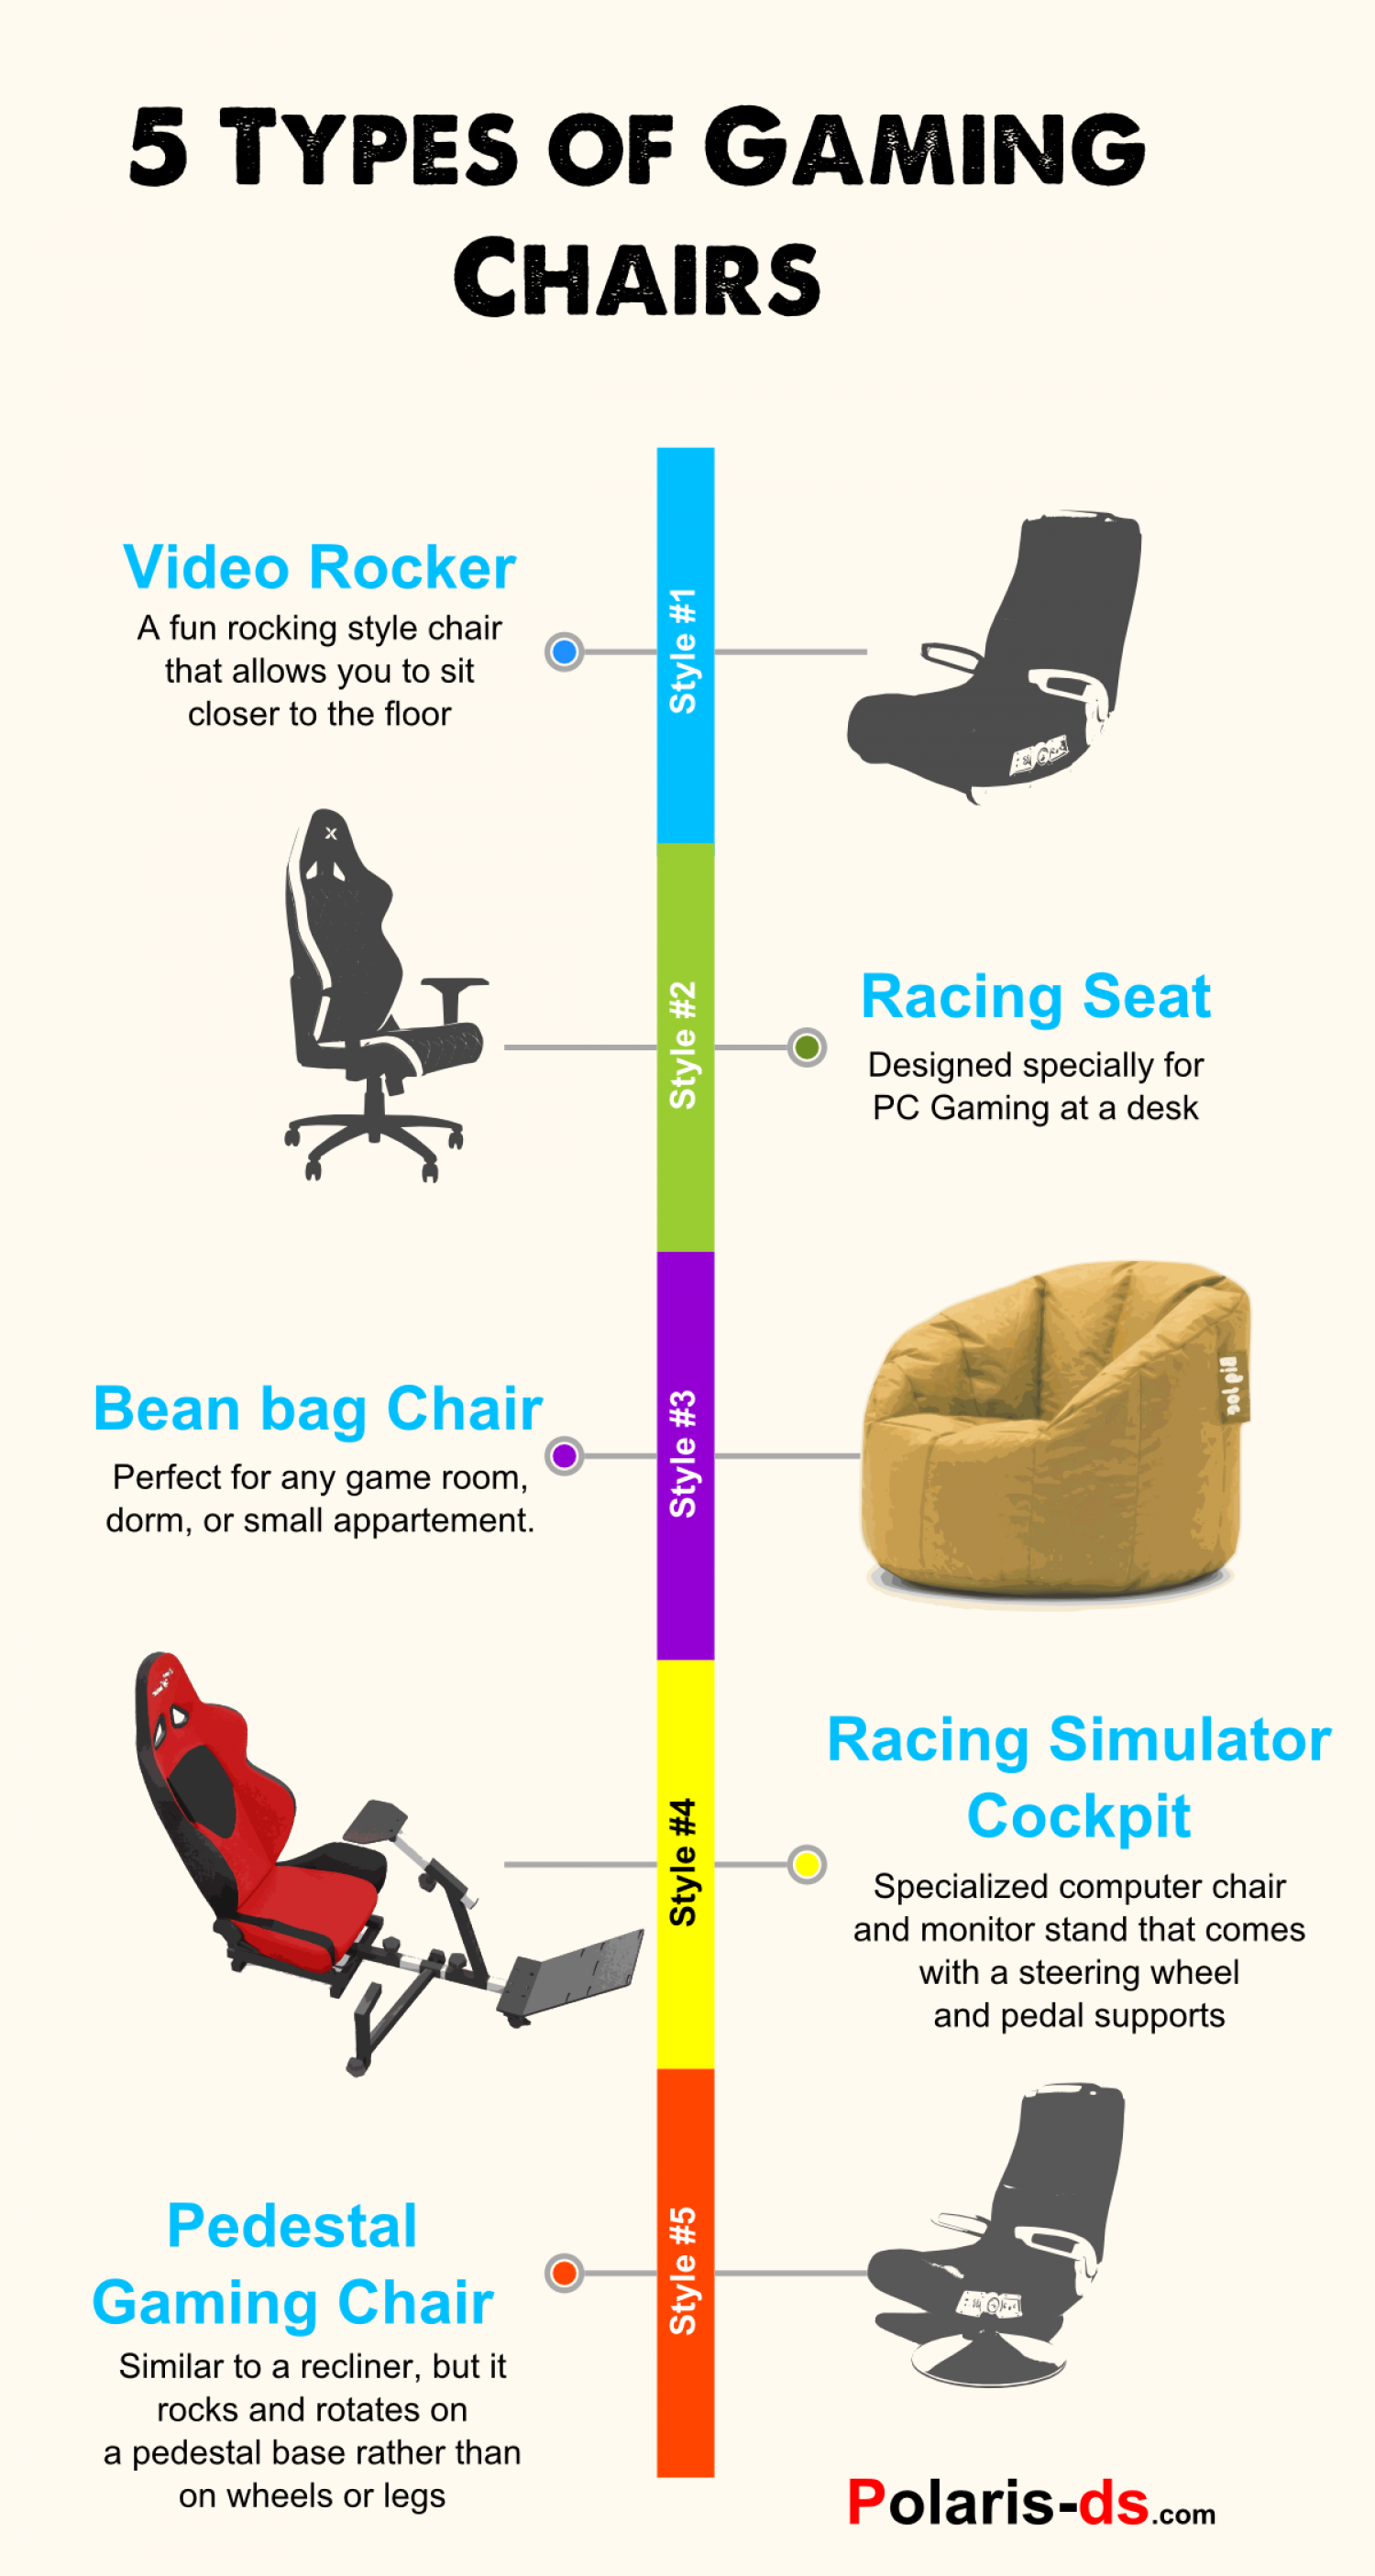 2db6e7ae3 5 Types of Gaming Chairs Infographic